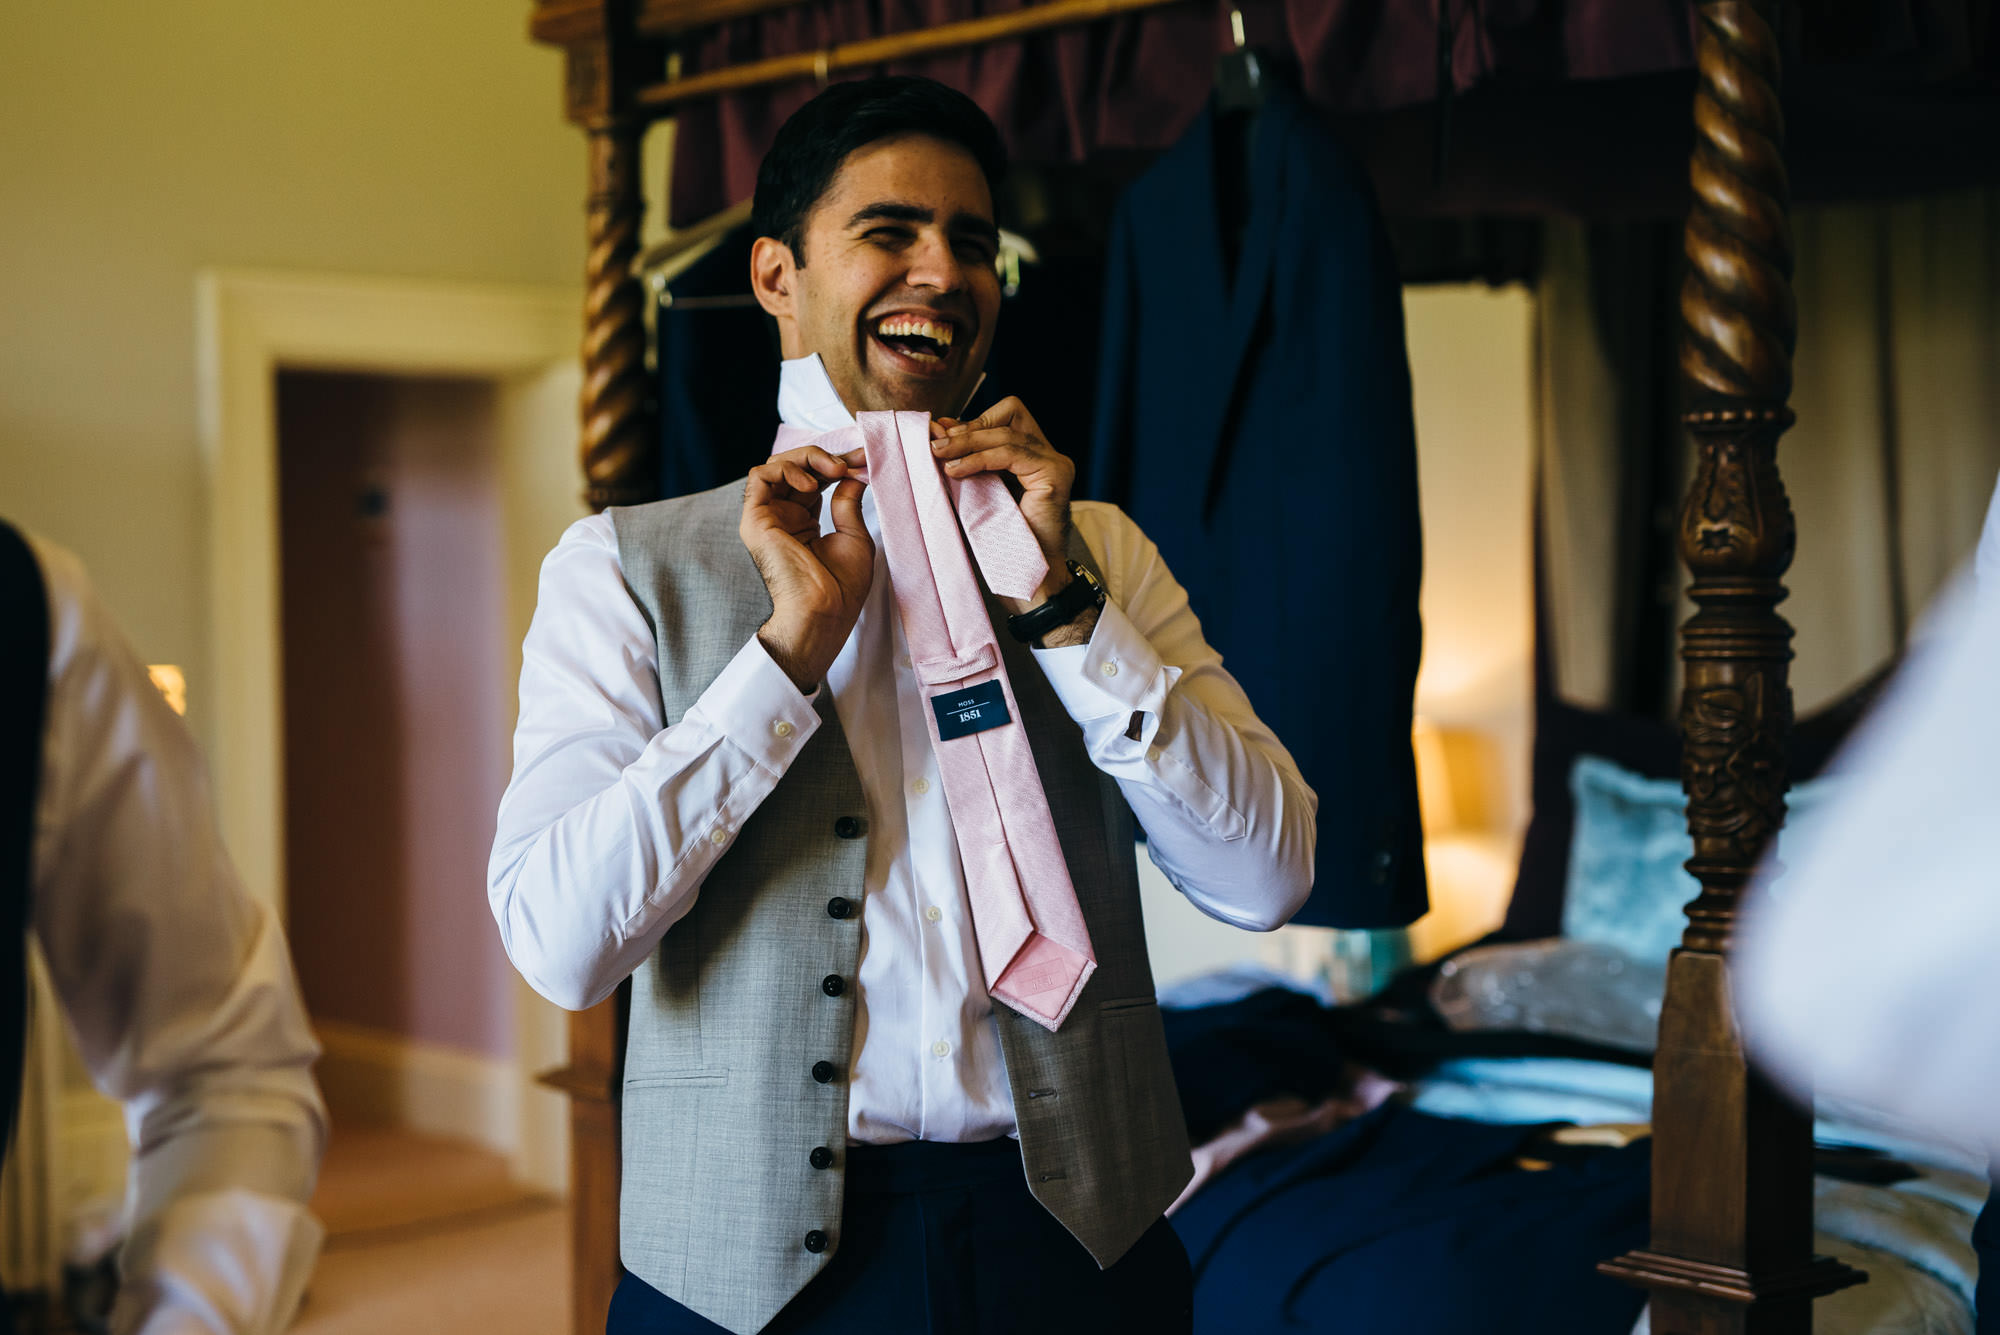 Groom changing for wedding